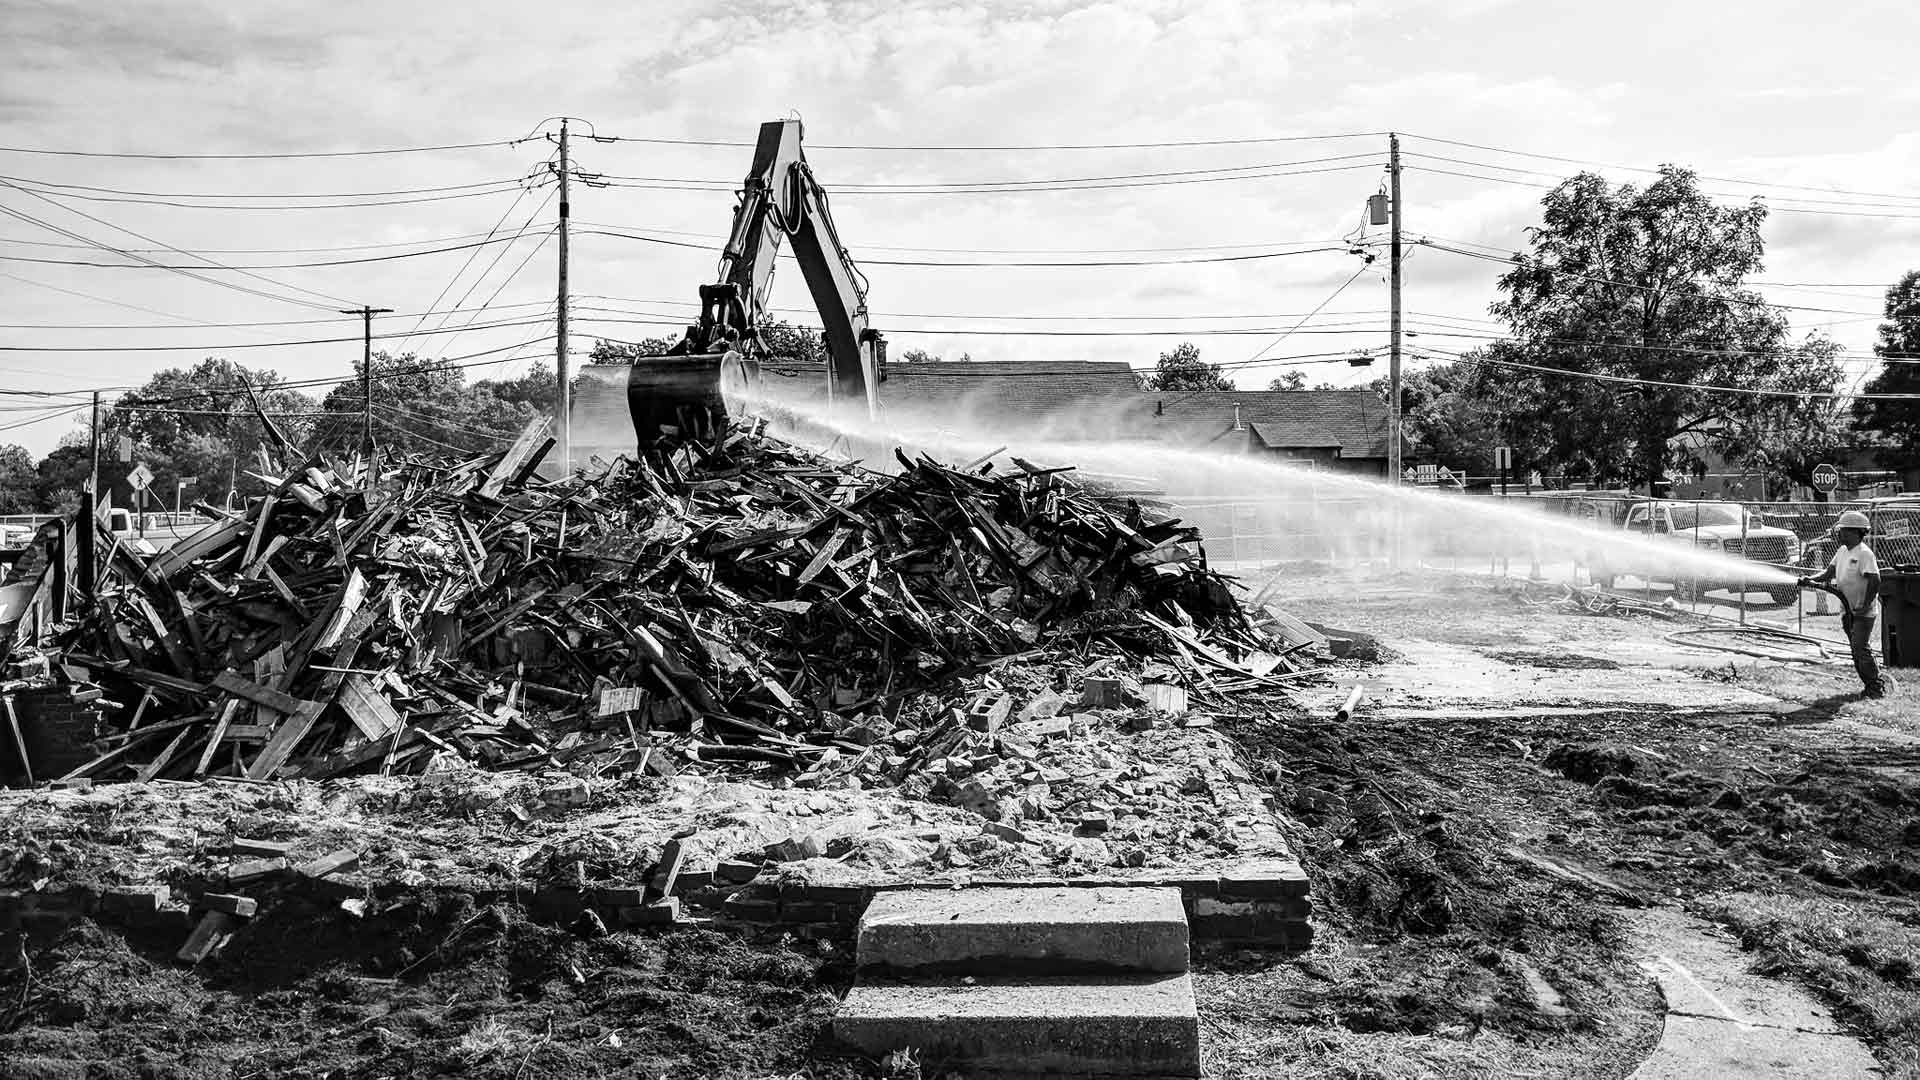 Site Demolition (Rubble Pile/Water Hose) - G BLOC MIXED USE Development - Broad Ripple North Village - Urban Infill - Indianapolis